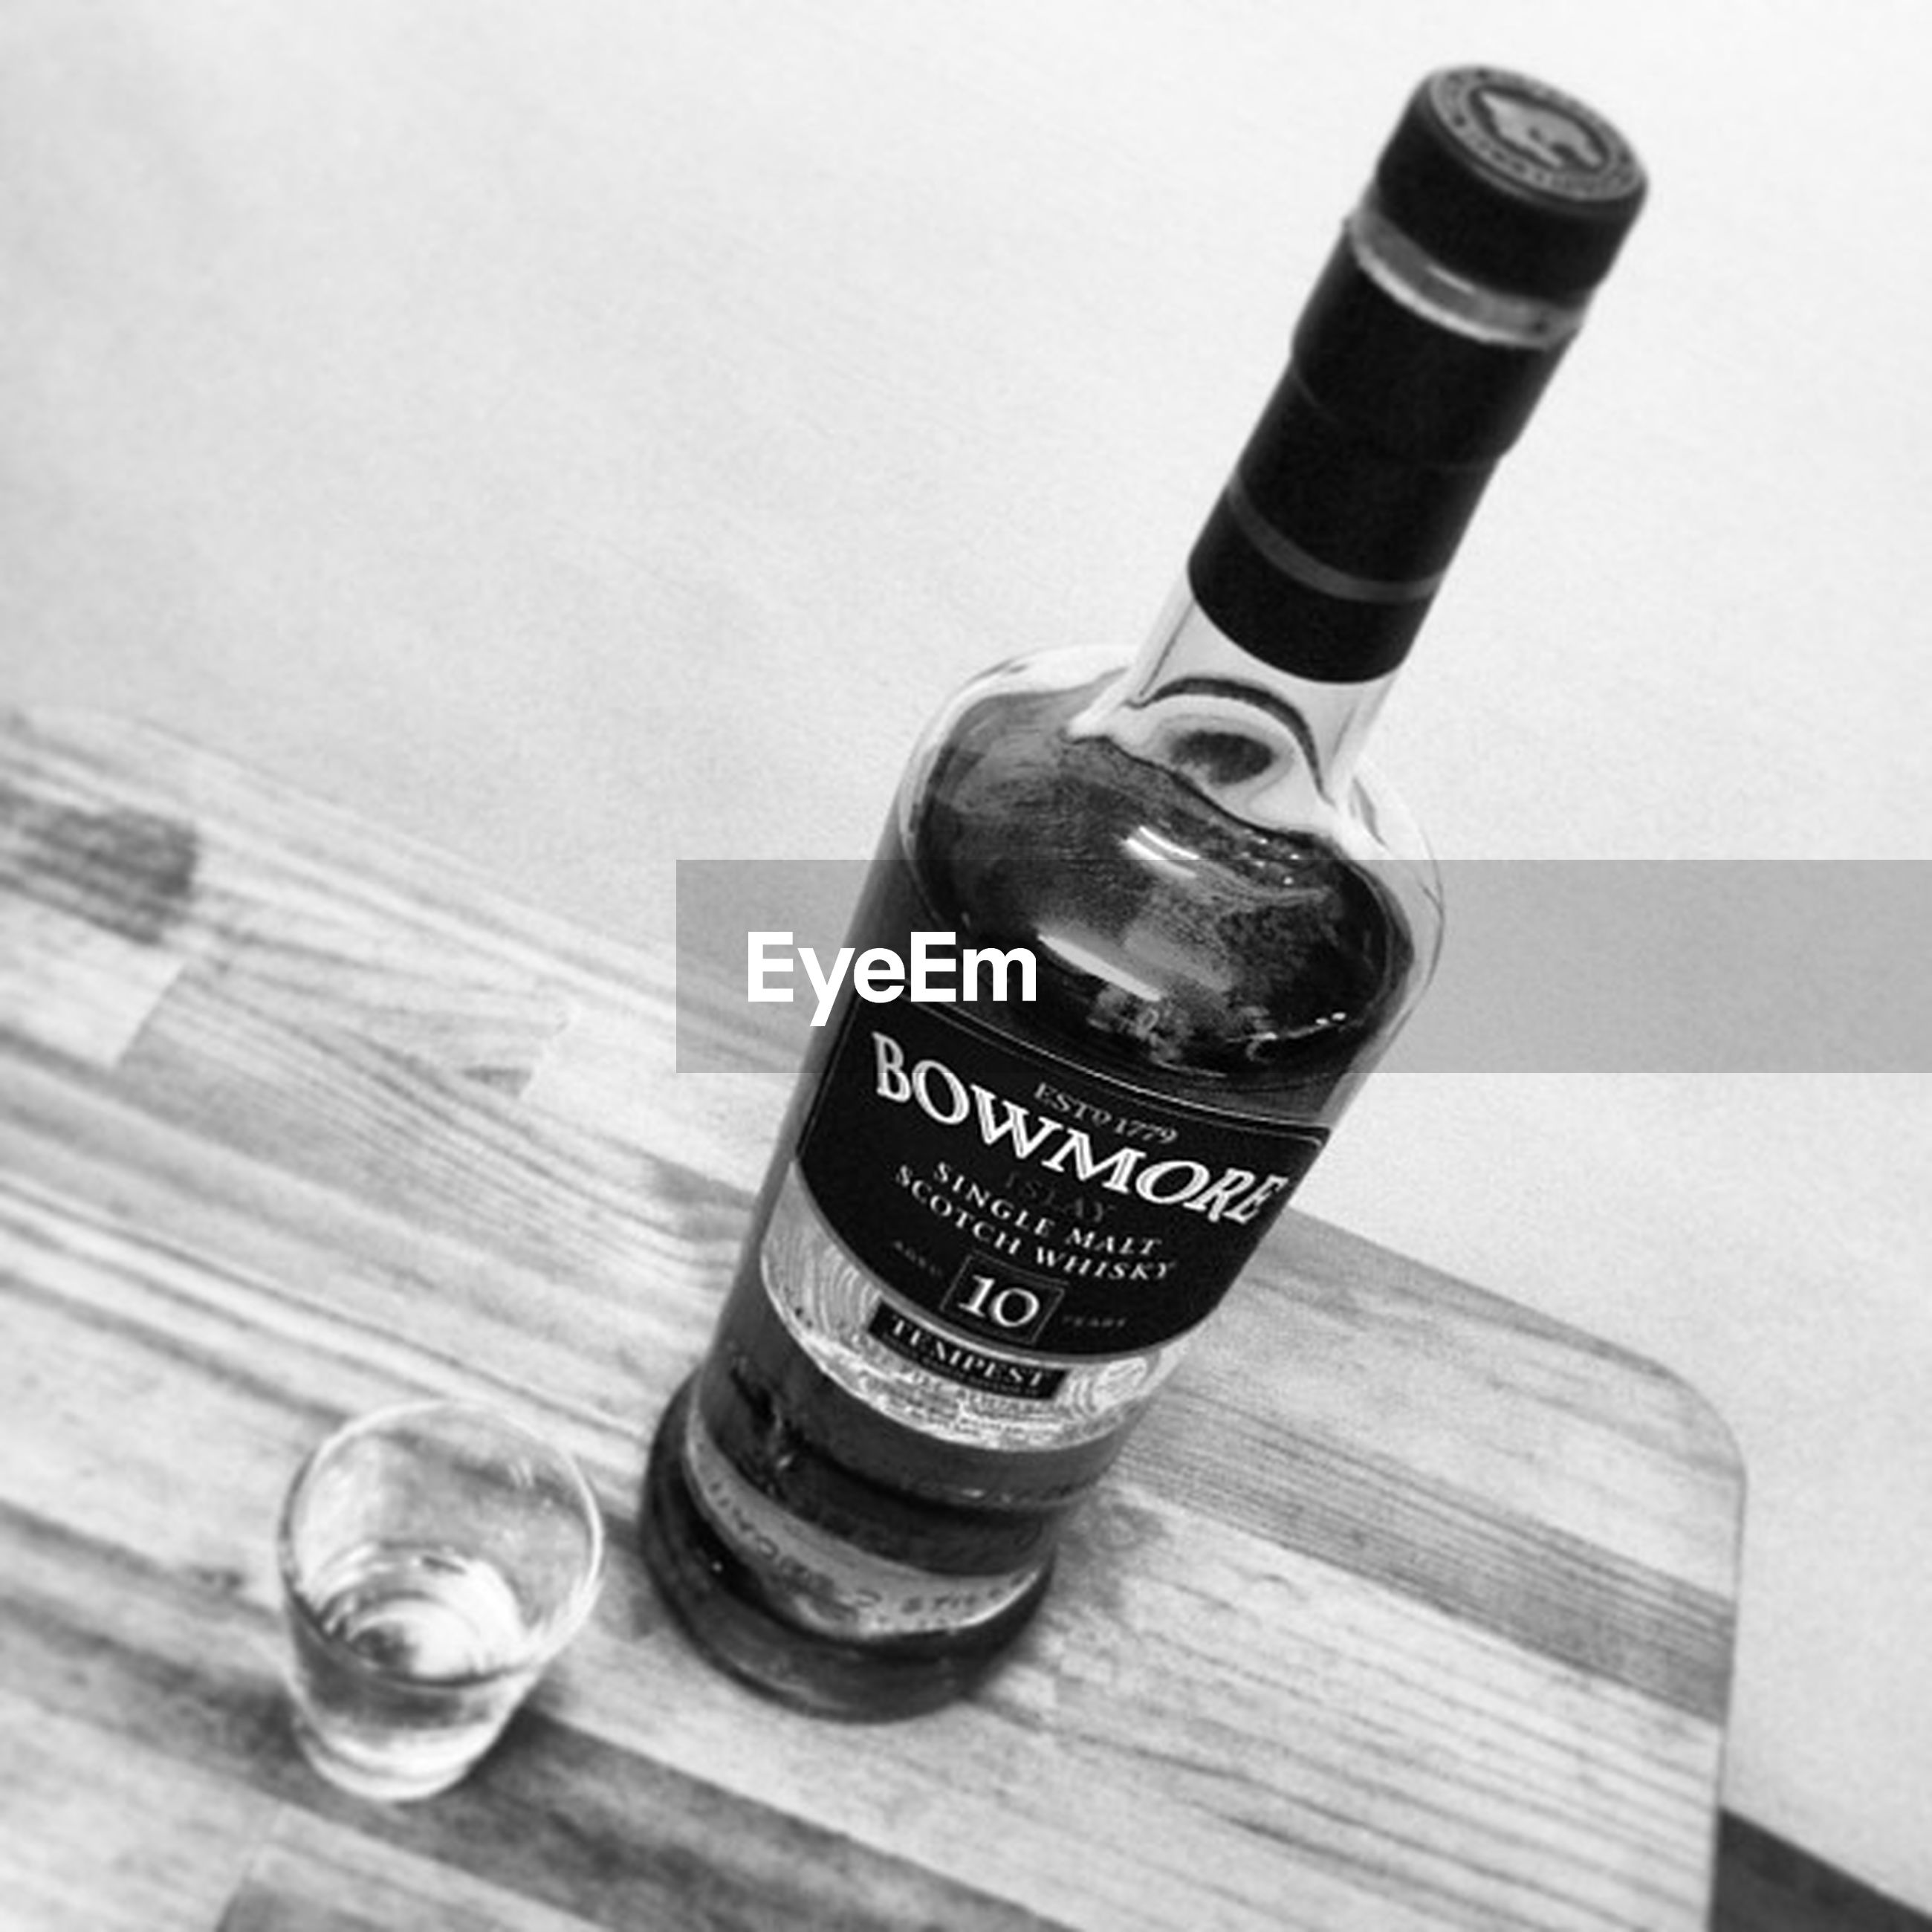 indoors, still life, table, close-up, text, communication, bottle, western script, wood - material, studio shot, high angle view, single object, food and drink, drink, white background, refreshment, no people, metal, alcohol, selective focus